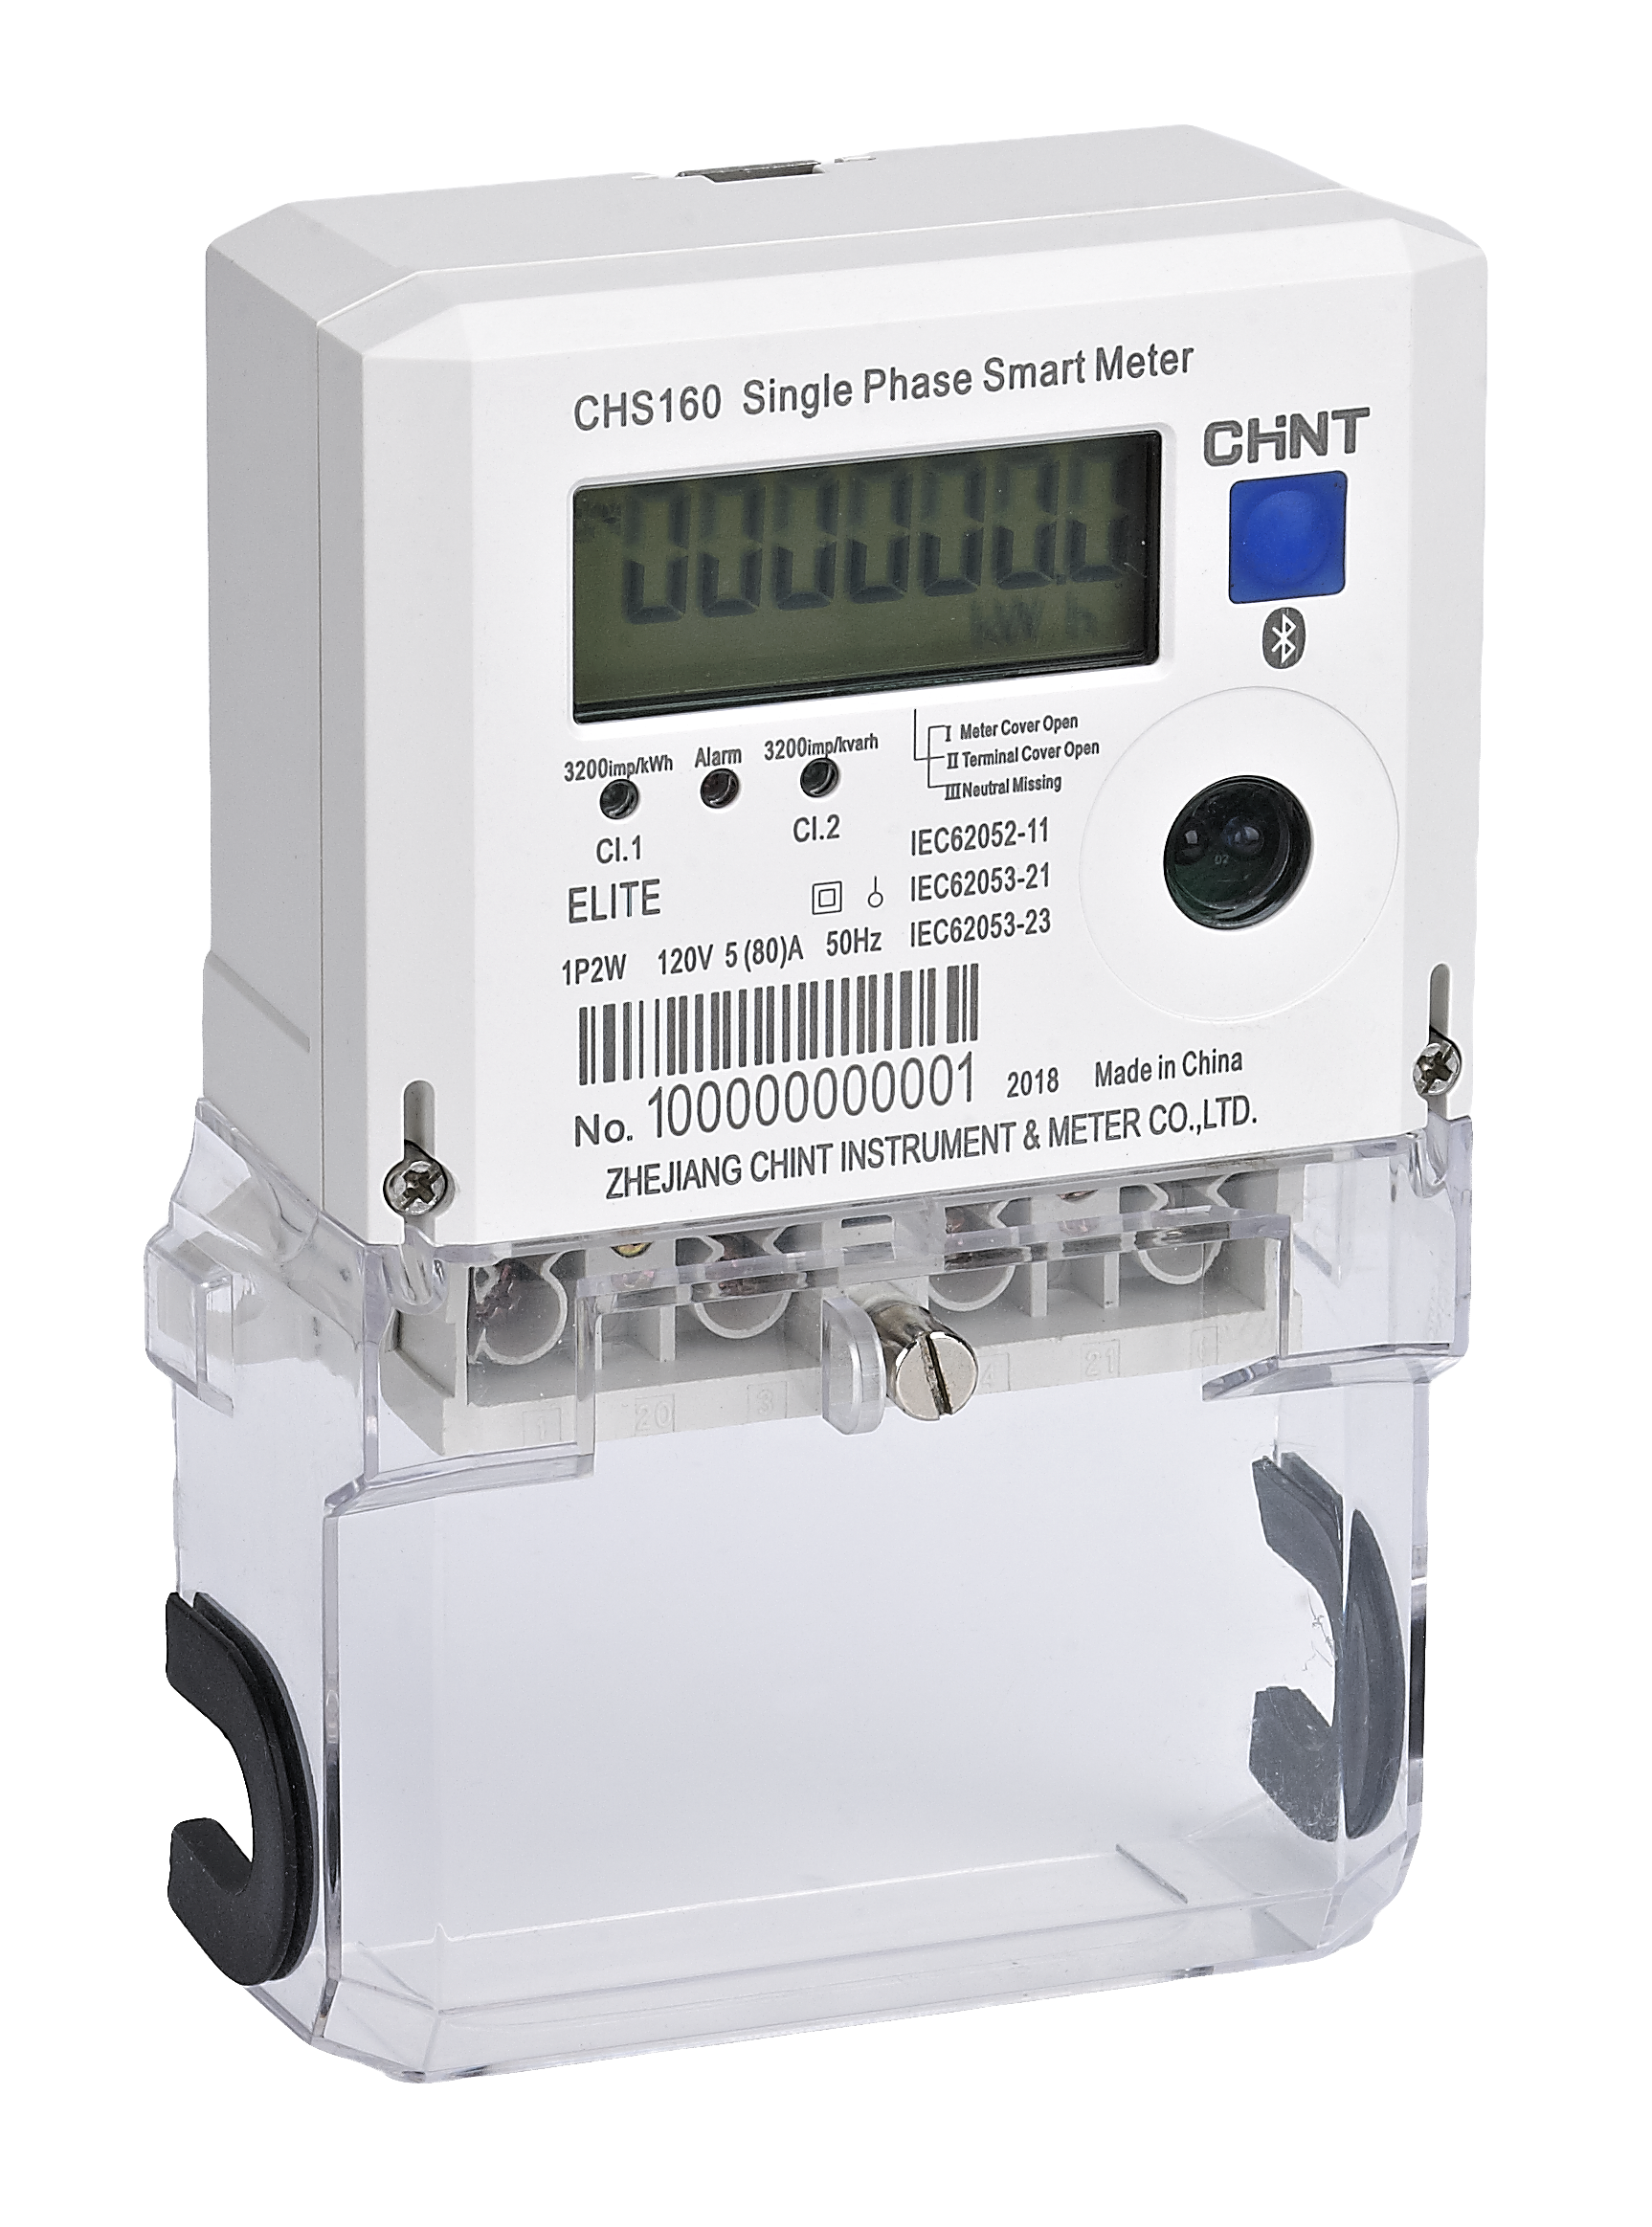 CHS160 Single Phase Smart Meter